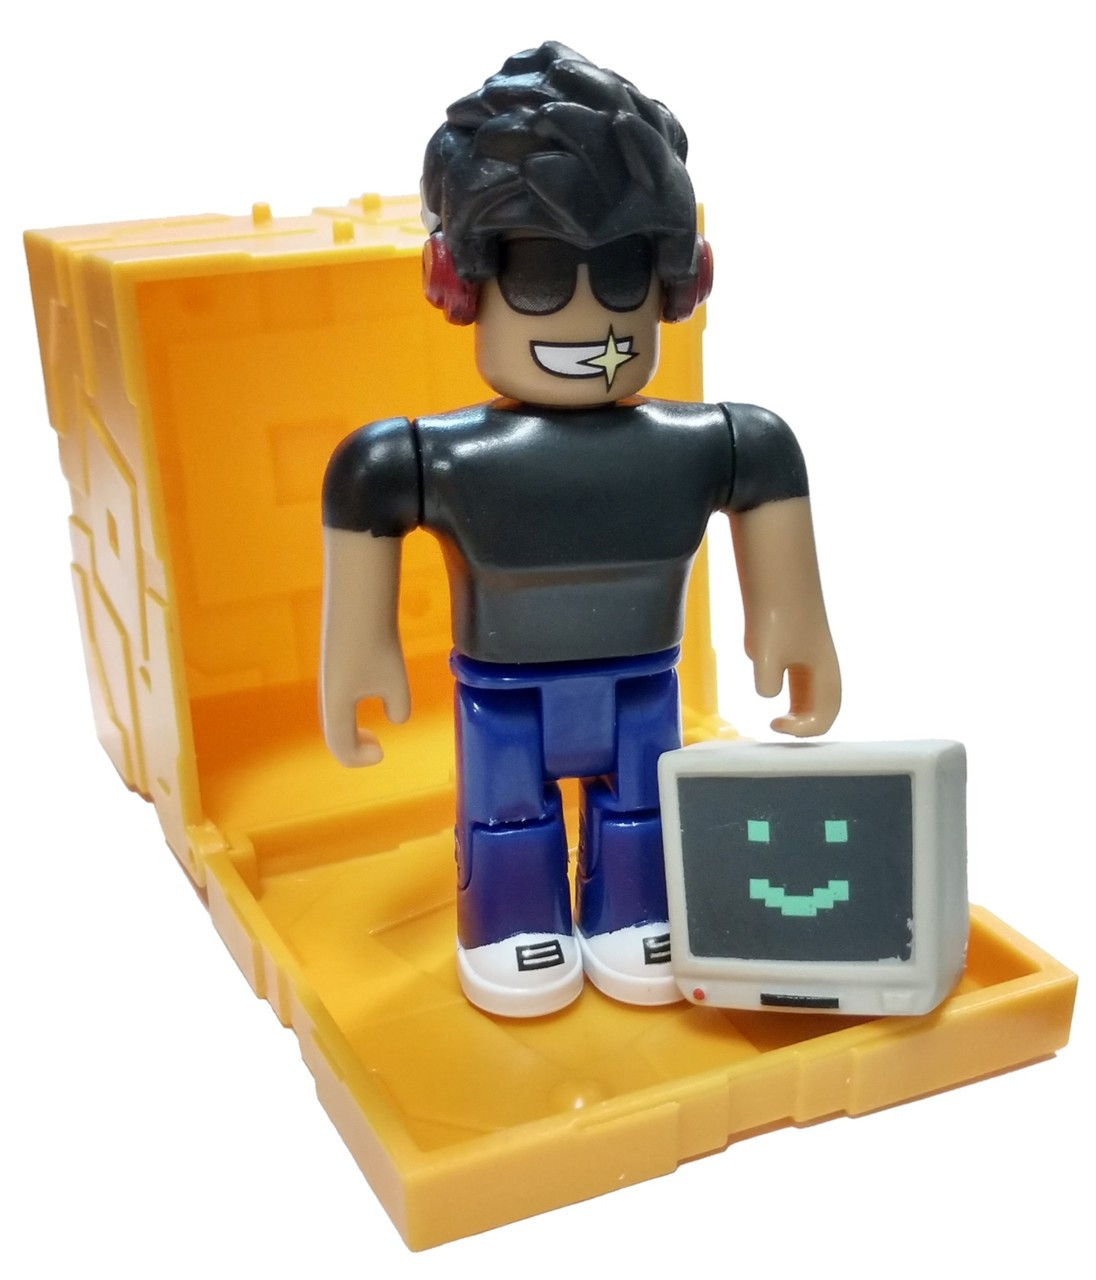 Roblox Series 5 Simbuilder Mini Figure with Gold Cube and Online Code Loose